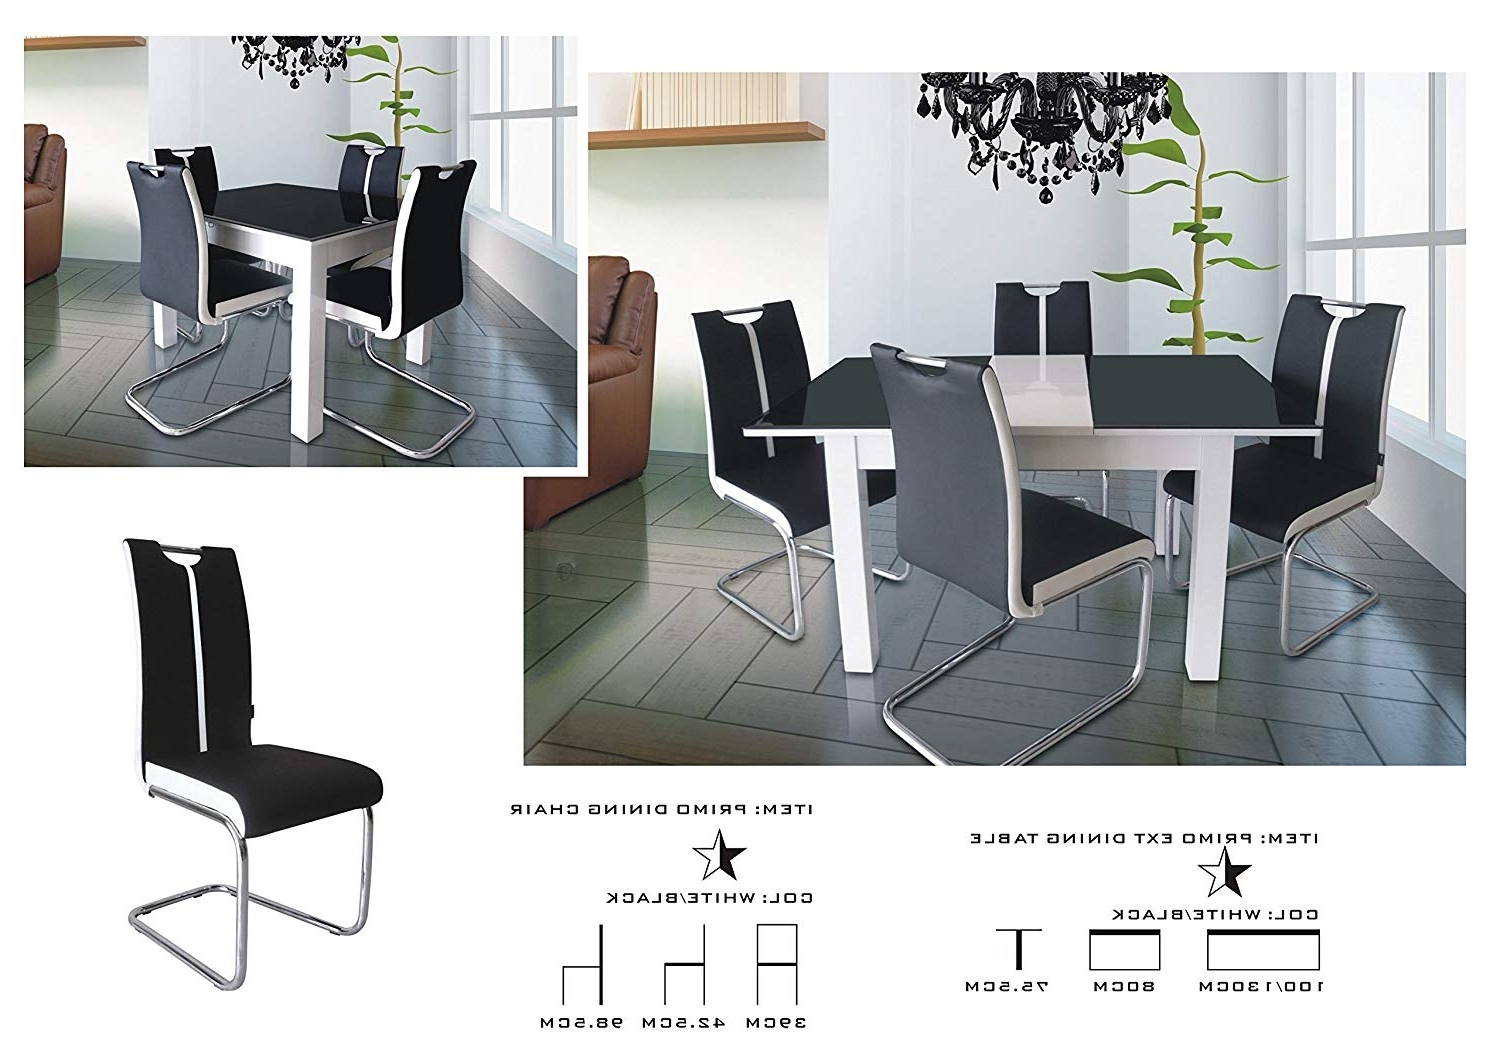 Extendable Dining Table And 4 Chairs Intended For Most Up To Date Modernique® Primo Extending Dining Table And 4 Chairs, Dining Table (View 17 of 25)